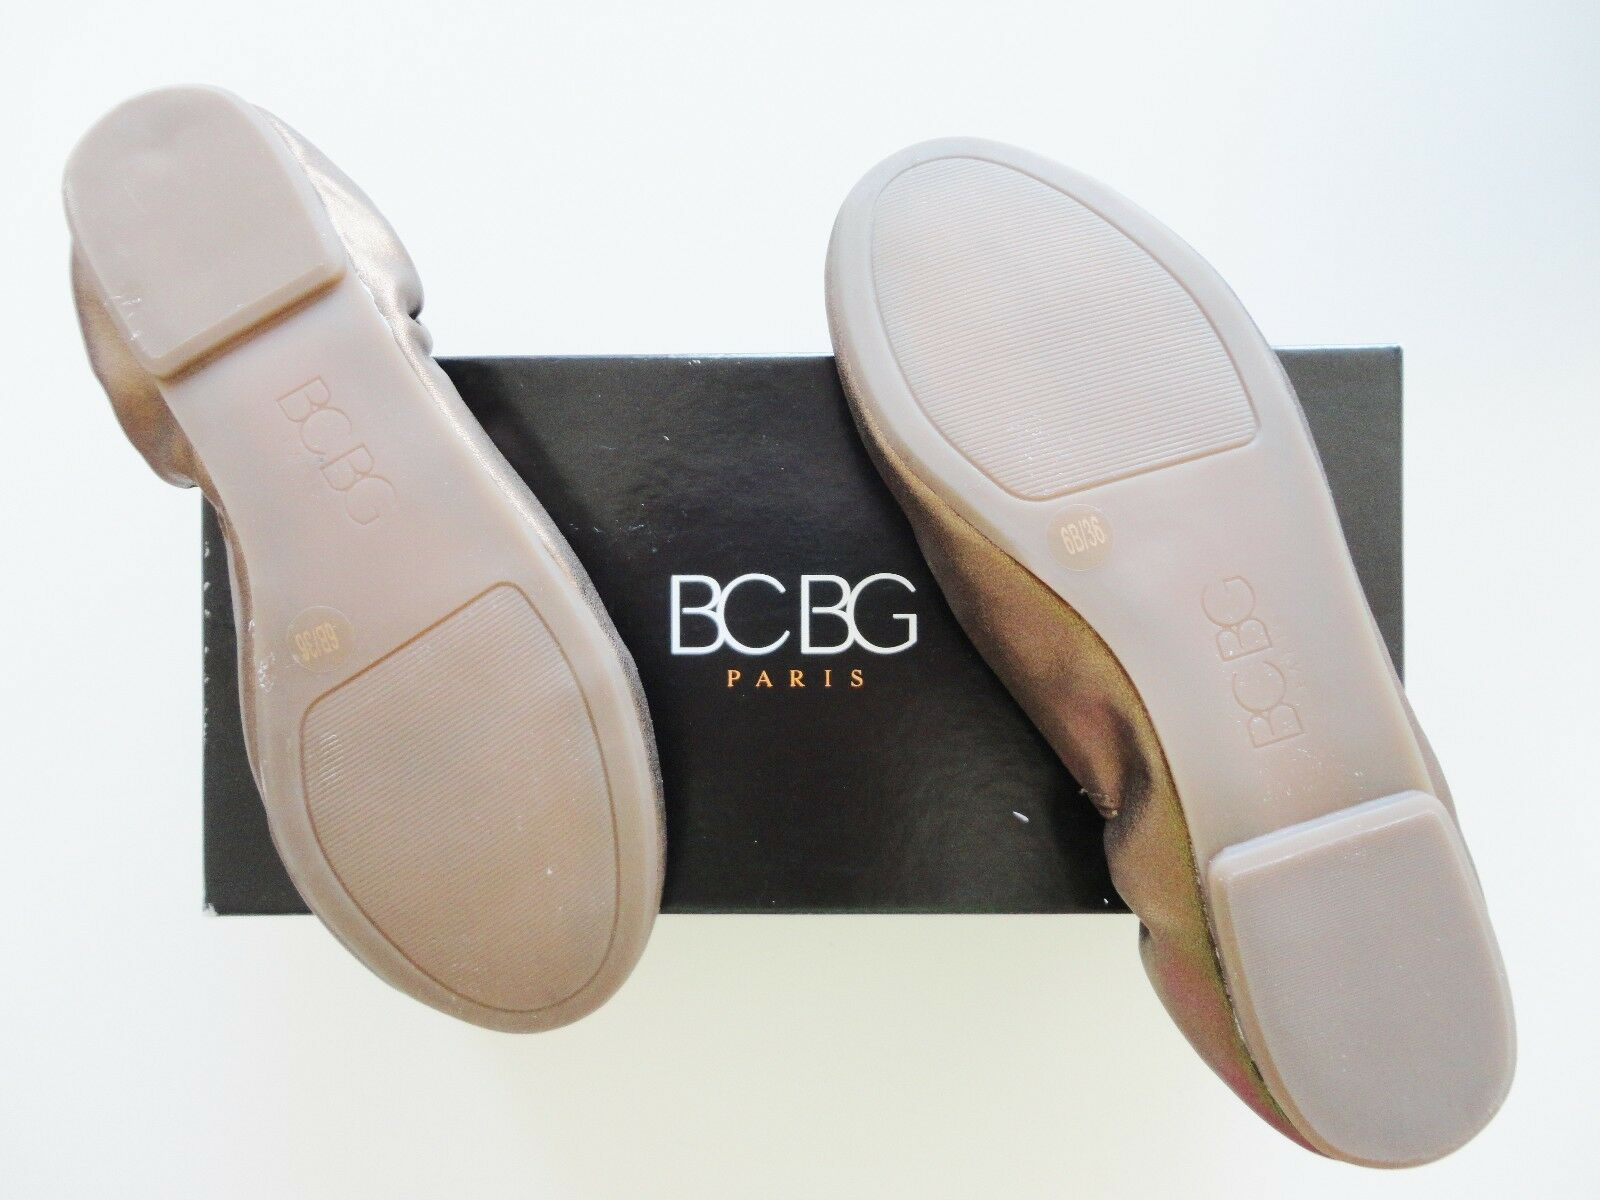 NEW BCBG BRONZE LEATHER FLATS SHOES LIMITED LIMITED LIMITED EDITION DESIGNER 100% AUTHENTIC c3d3e3